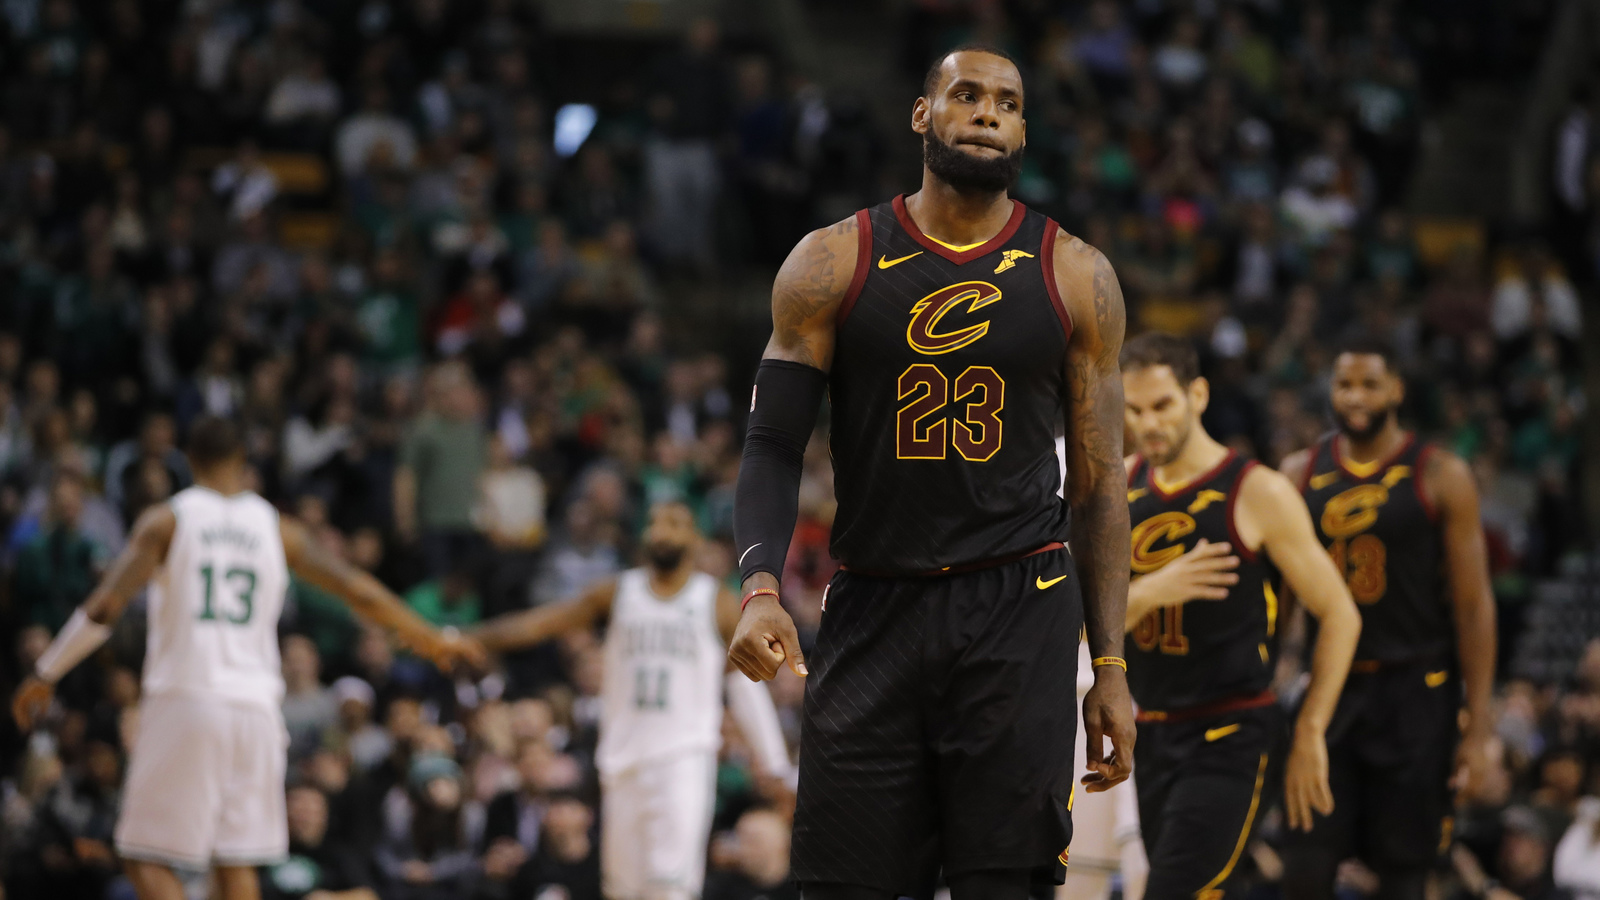 LeBron James didn't want Cavs to trade Kyrie Irving